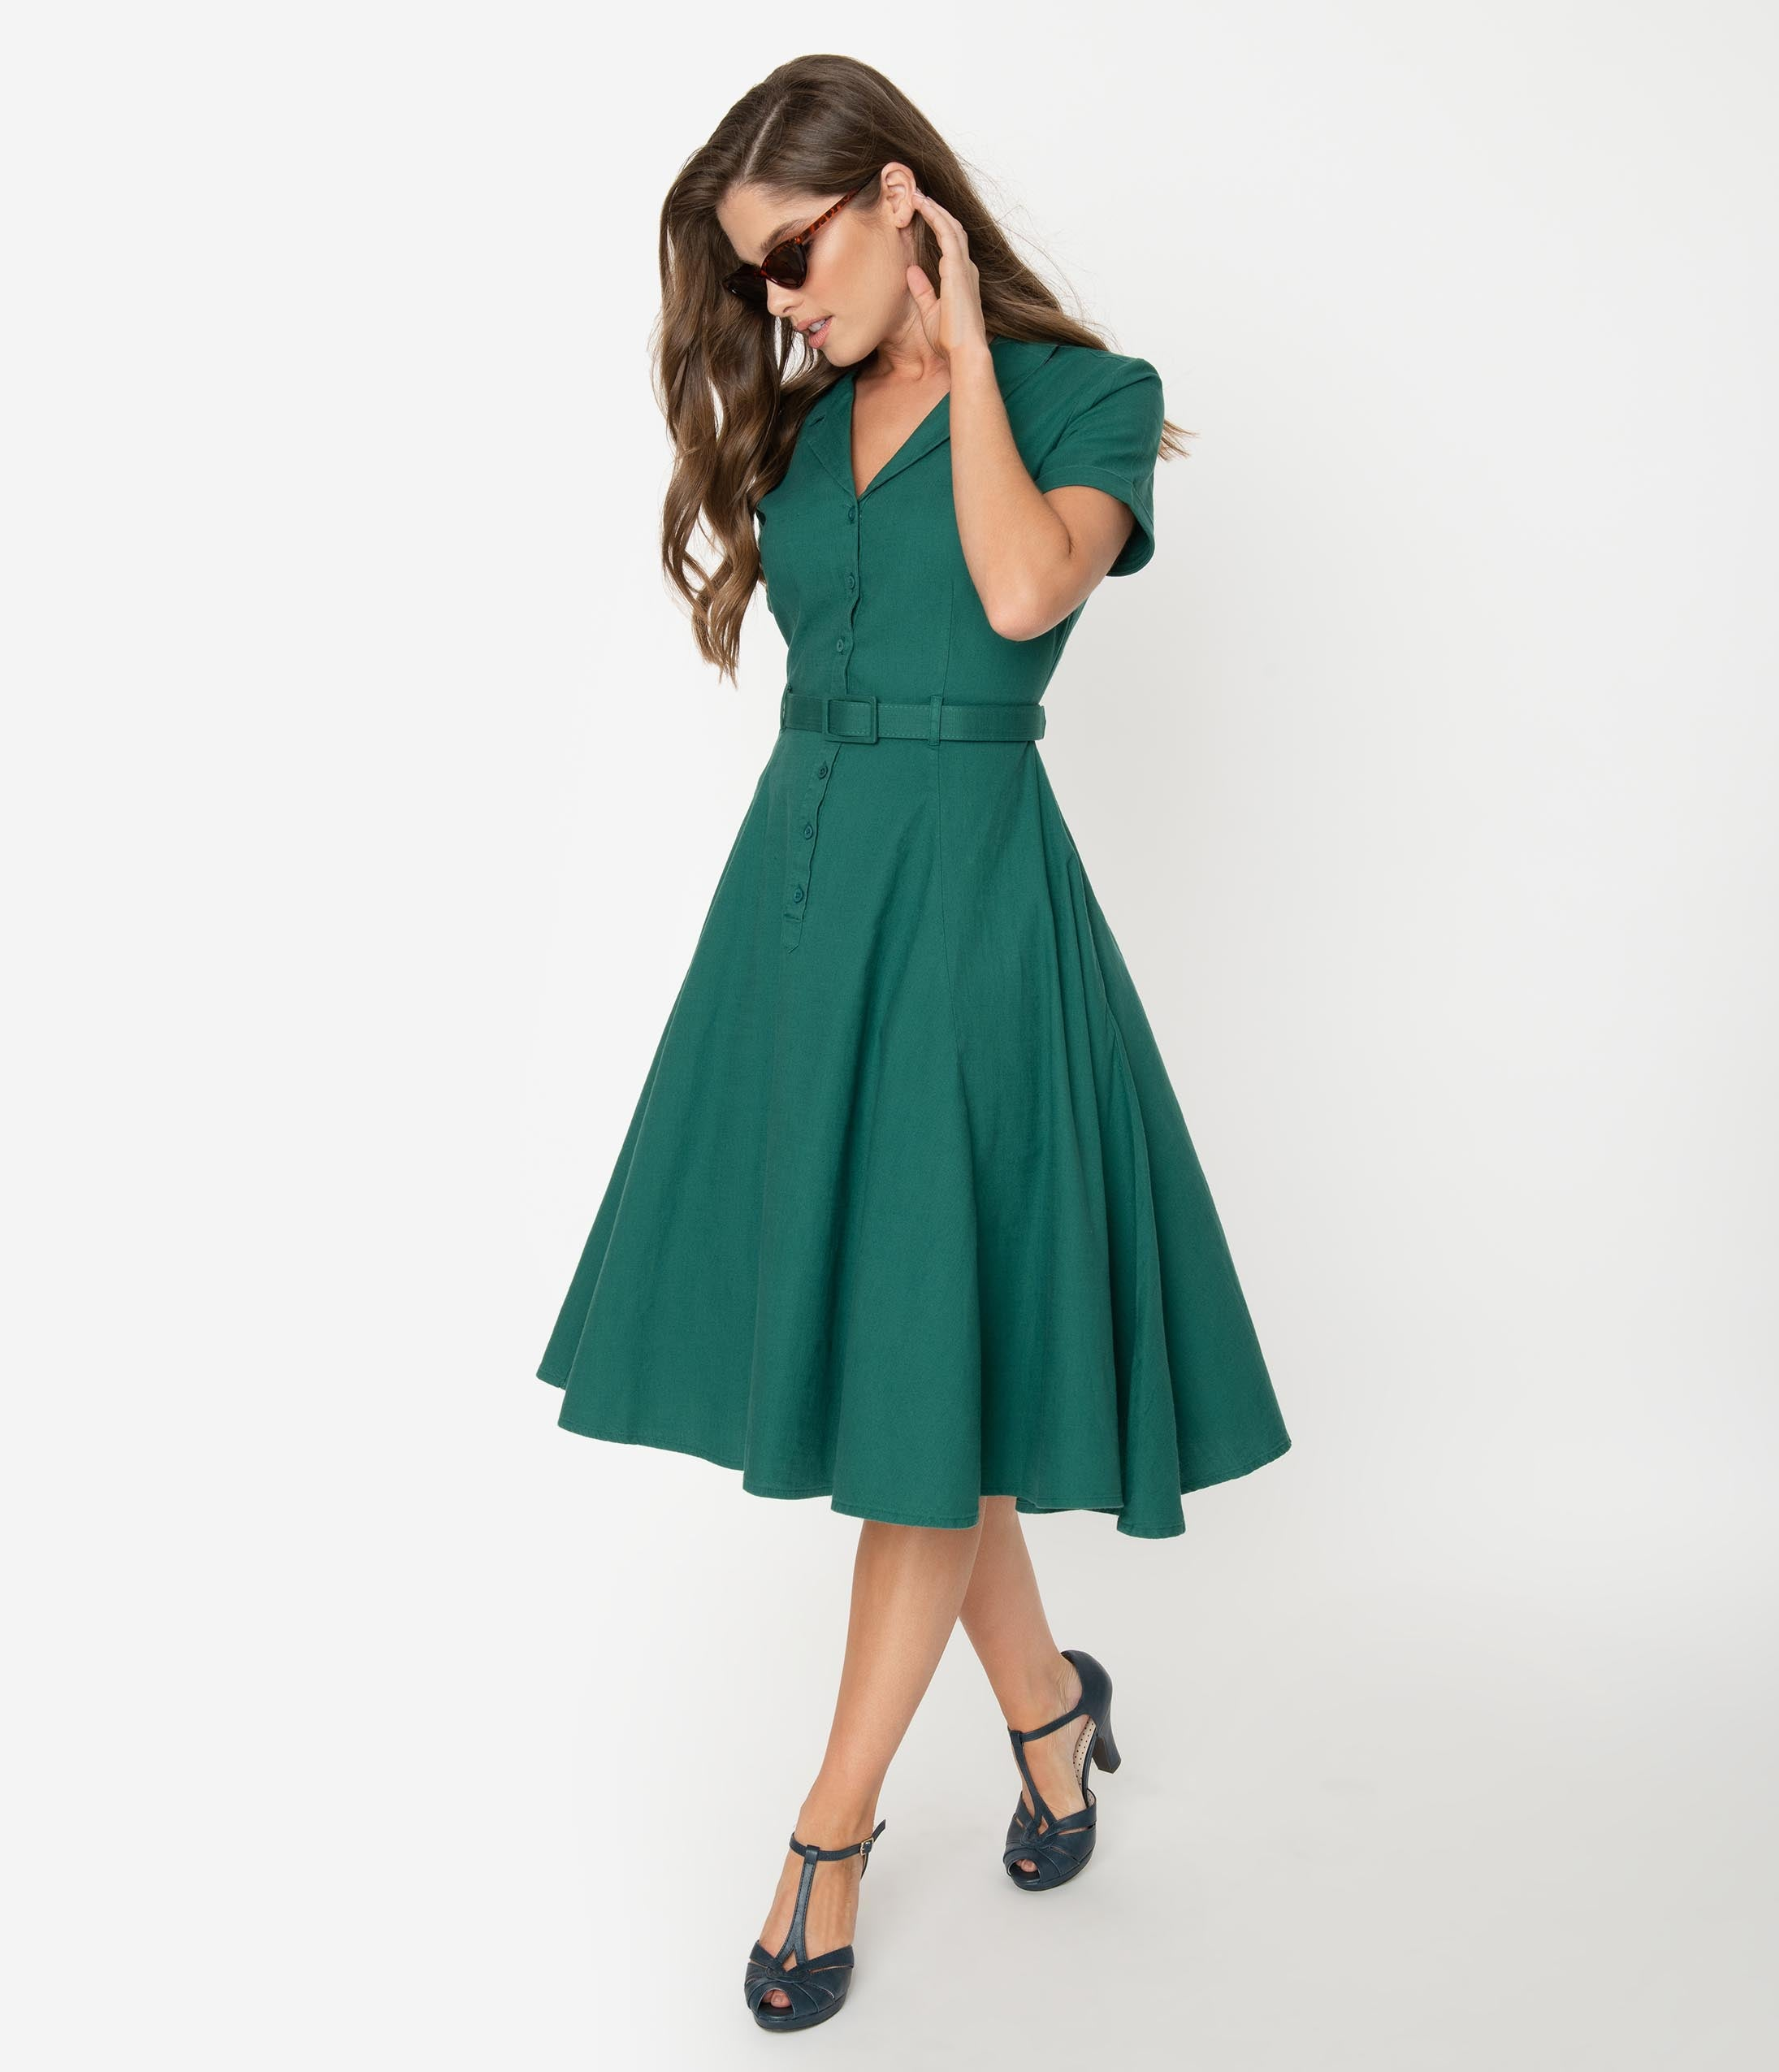 Swing Dance Dresses | Lindy Hop Dresses & Clothing Collectif 1950S Emerald Green Cotton Caterina Swing Dress $68.00 AT vintagedancer.com